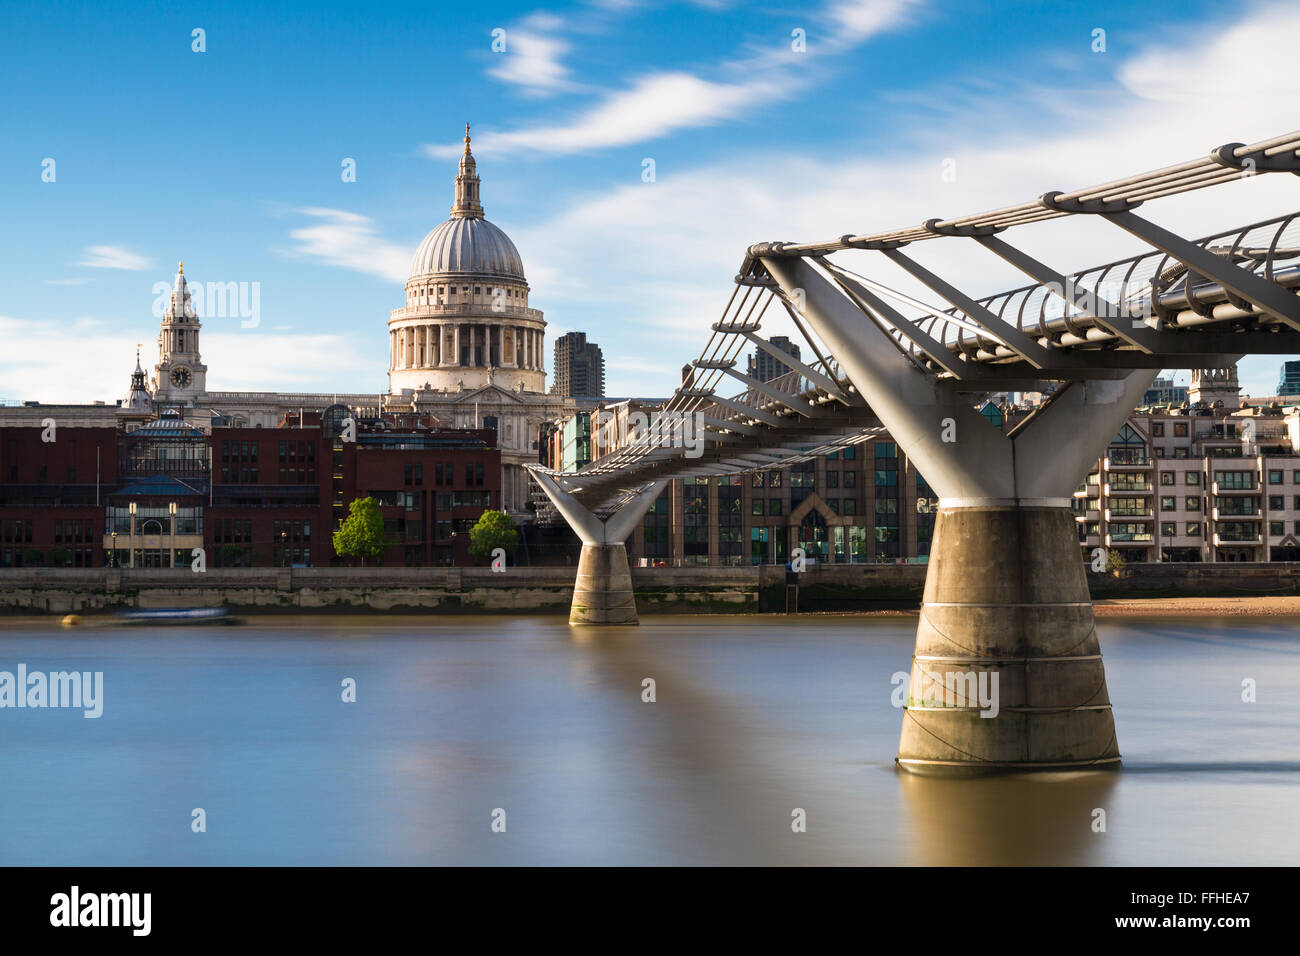 St.Pauls Cathedral - version longue Exposition, Londres, Angleterre Photo Stock